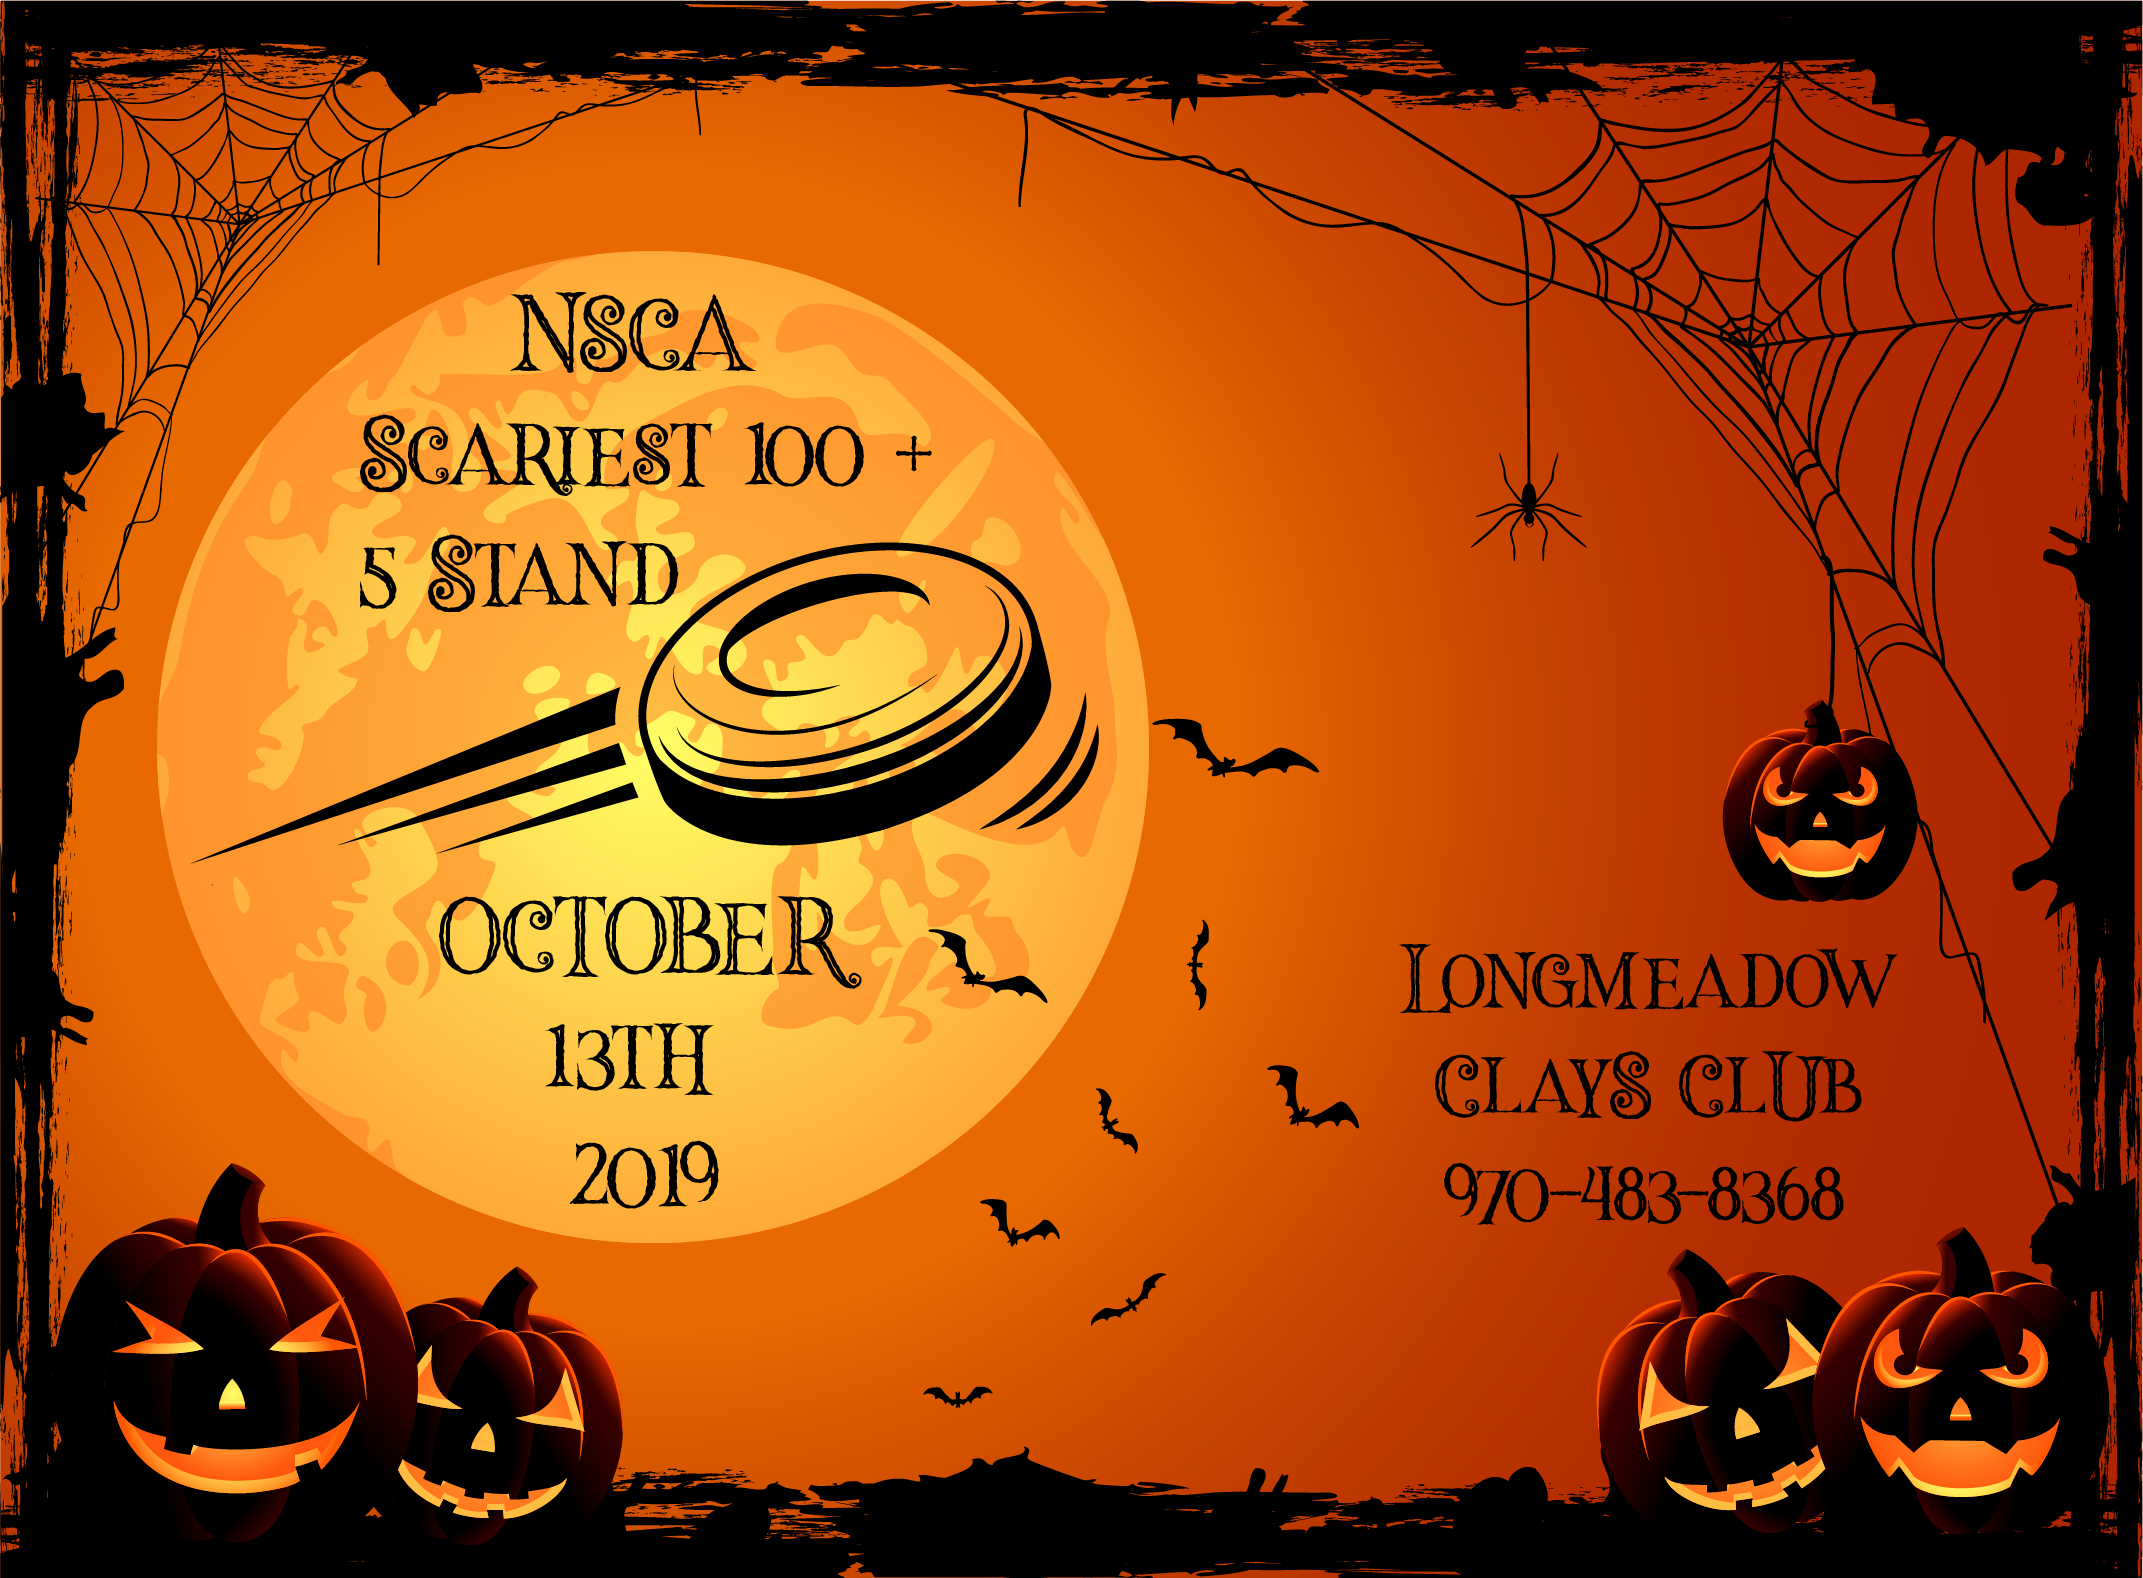 NSCA Scariest 100 + 5 Stand at Longmeadow Clays Club